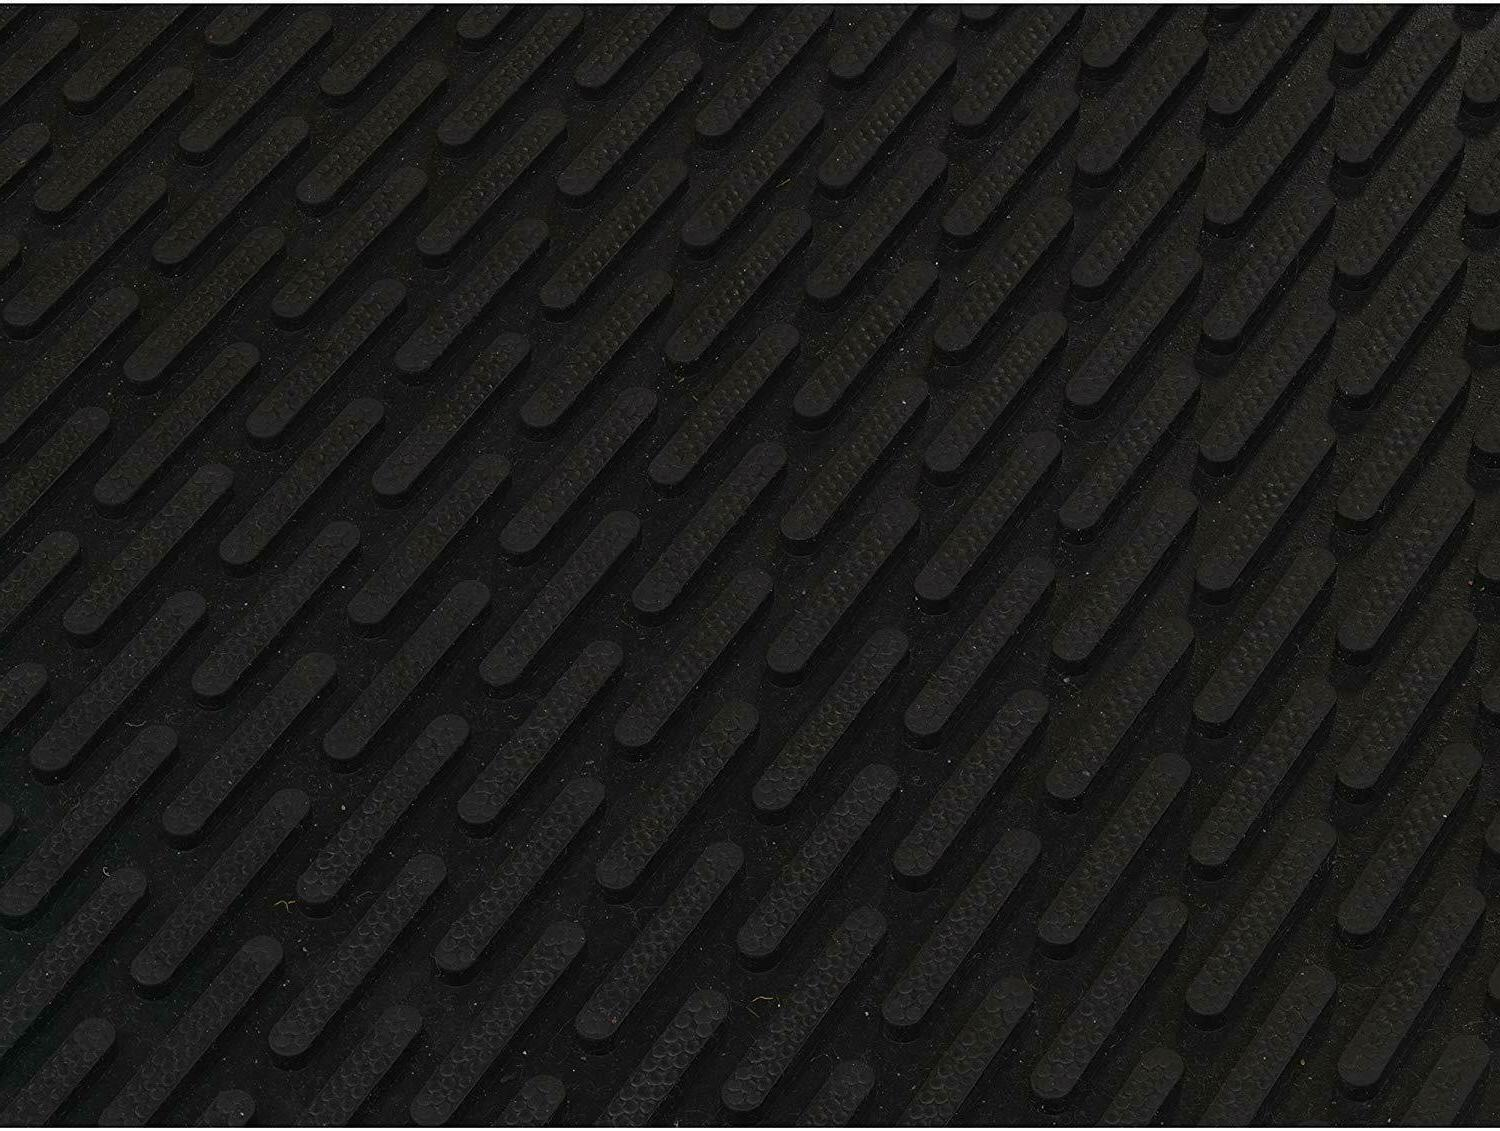 24 Commercial Entrance Mat Indoor Entry Non